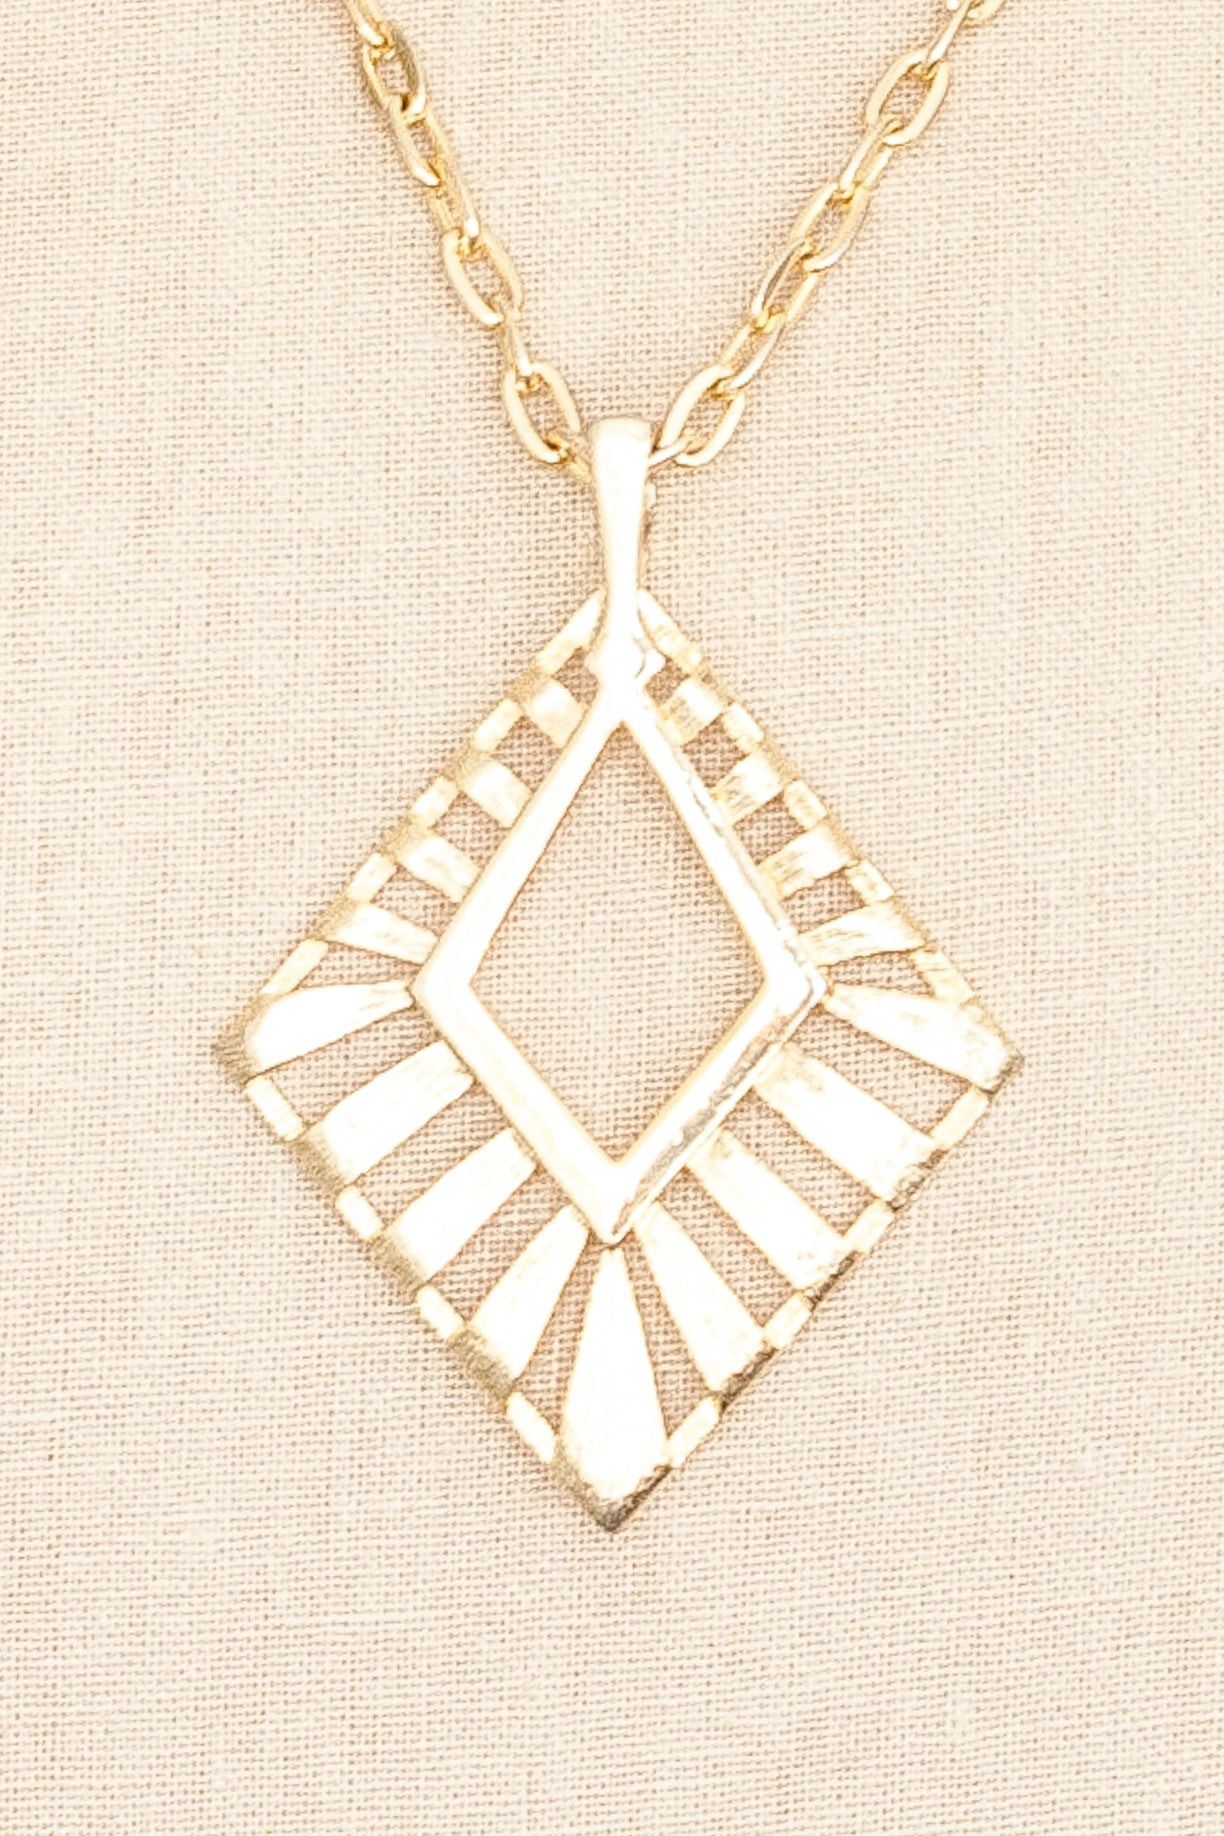 70's__Vintage__Diamond Pendant Necklace